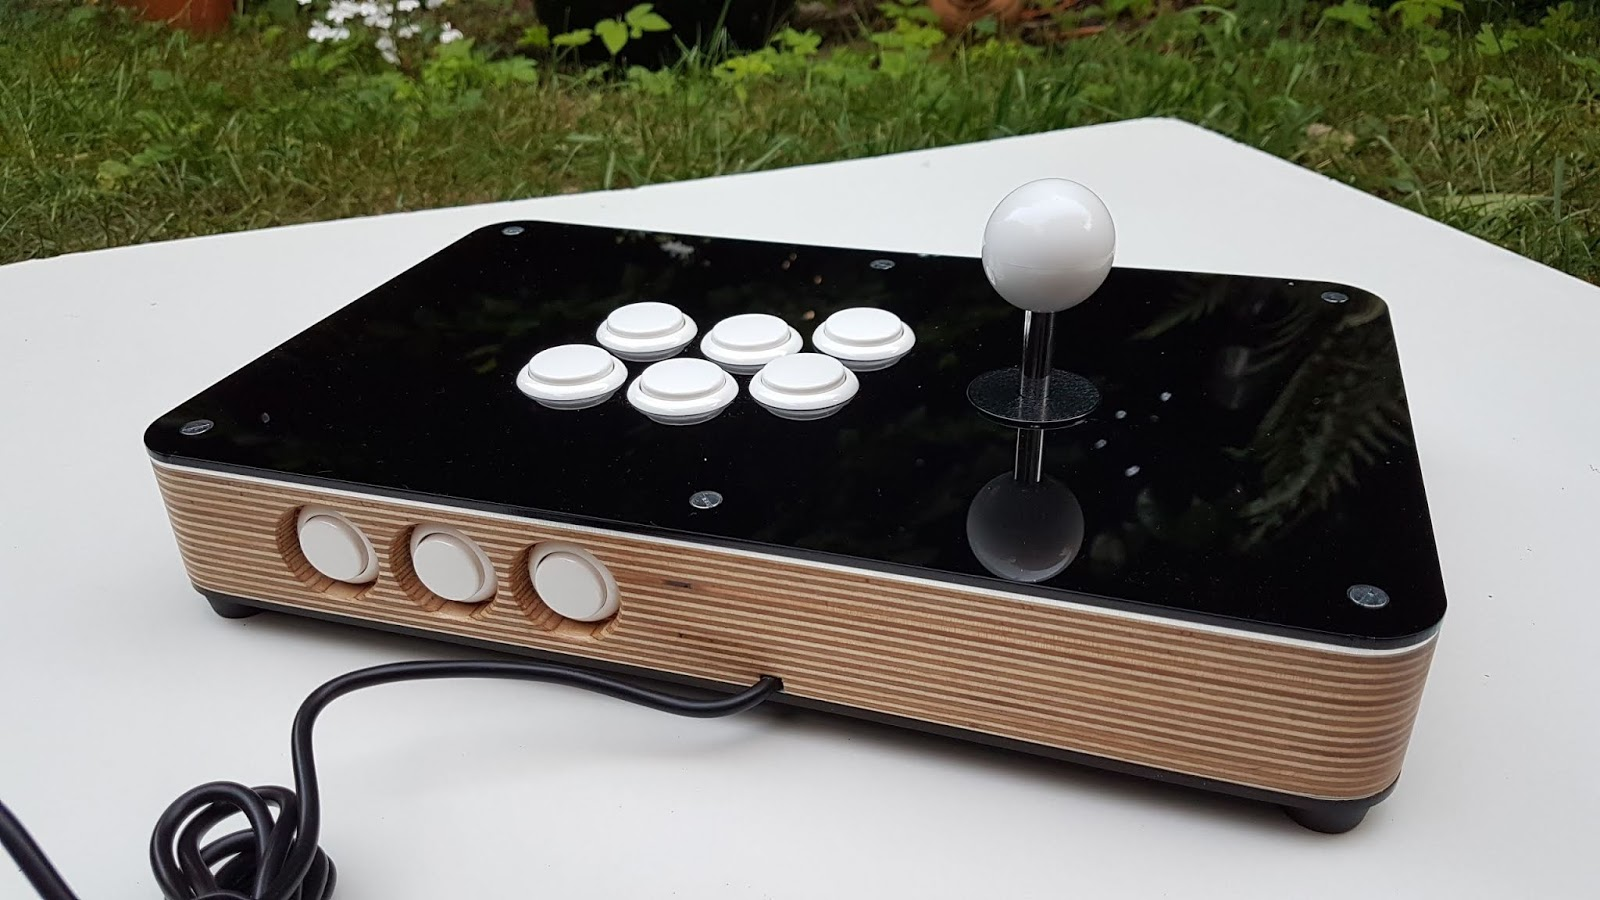 Arcade and Video Game Modding: Best Arcade Stick for